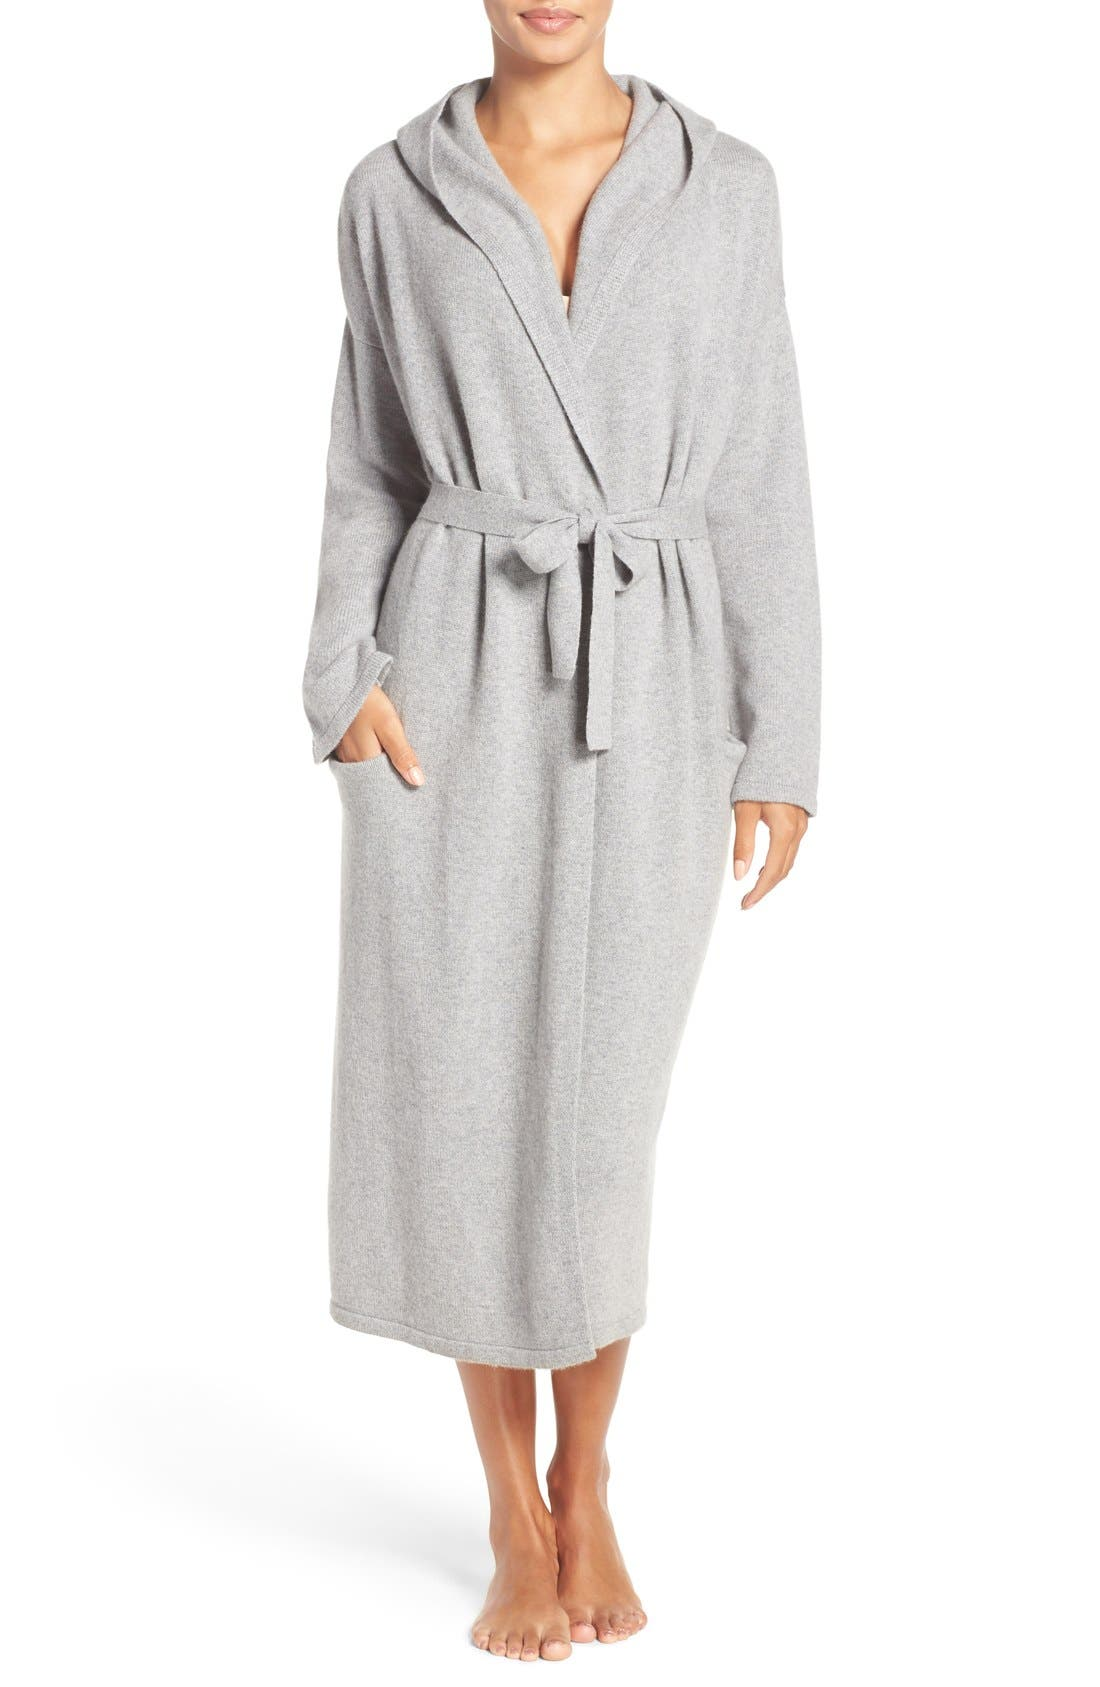 'Evie' Hooded Cashmere Robe,                             Main thumbnail 1, color,                             Grey Heather